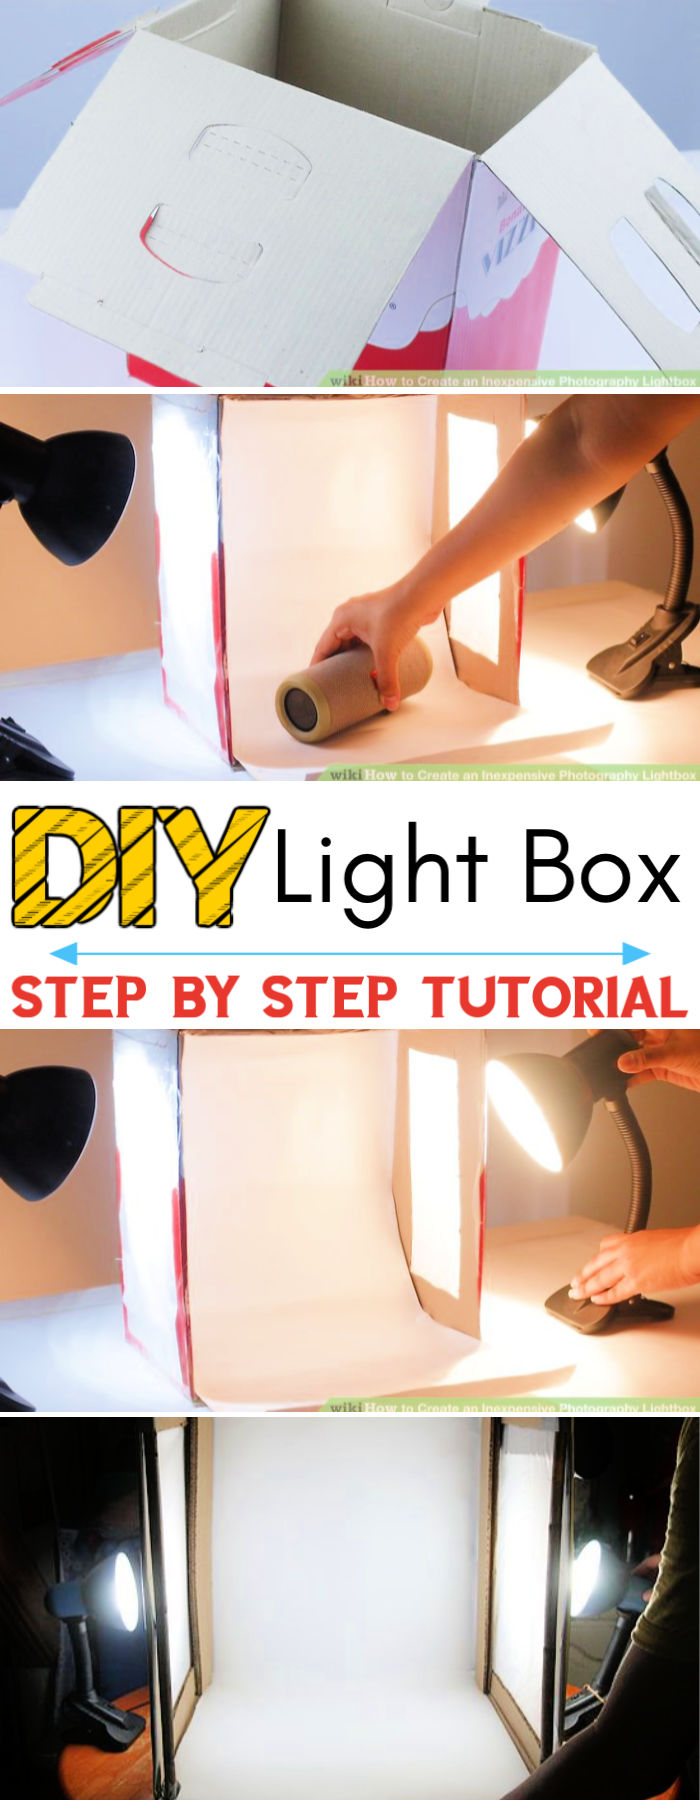 Create an Inexpensive Photography Lightbox